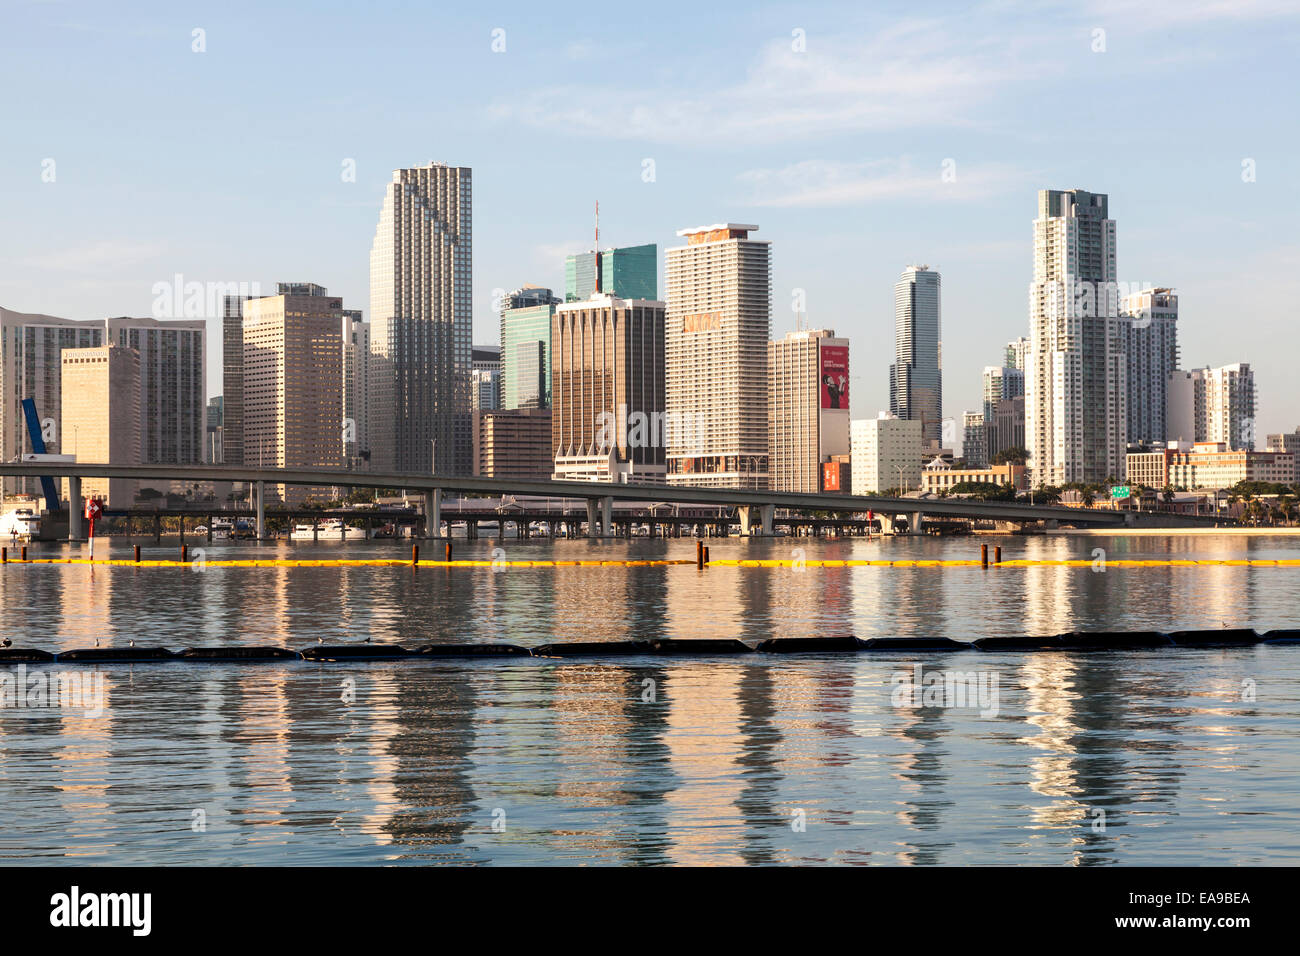 High-rises of the Miami skyline are reflected in the calm waters of Biscayne Bay in the early morning sunlight, Stock Photo